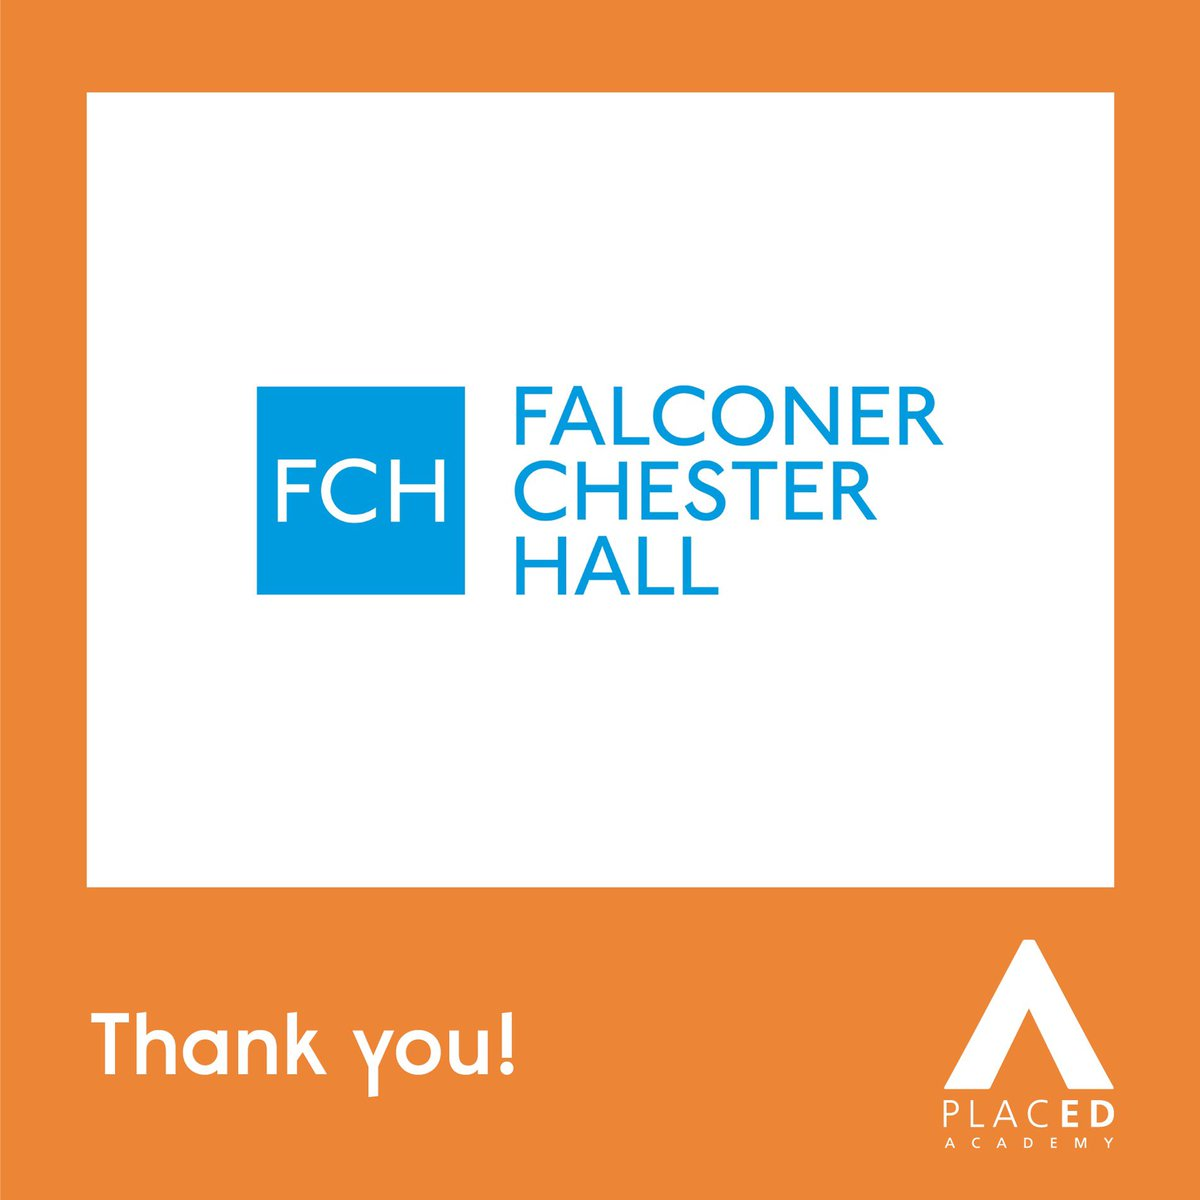 A HUGE thank you to our wonderful sponsors, @fcharchitects! FCH have really gone the extra mile in supporting #PLACEDAcademy - providing two placements for our participants, supporting workshops AND delivering a site visit! Were very grateful to have you onboard! #PLACED